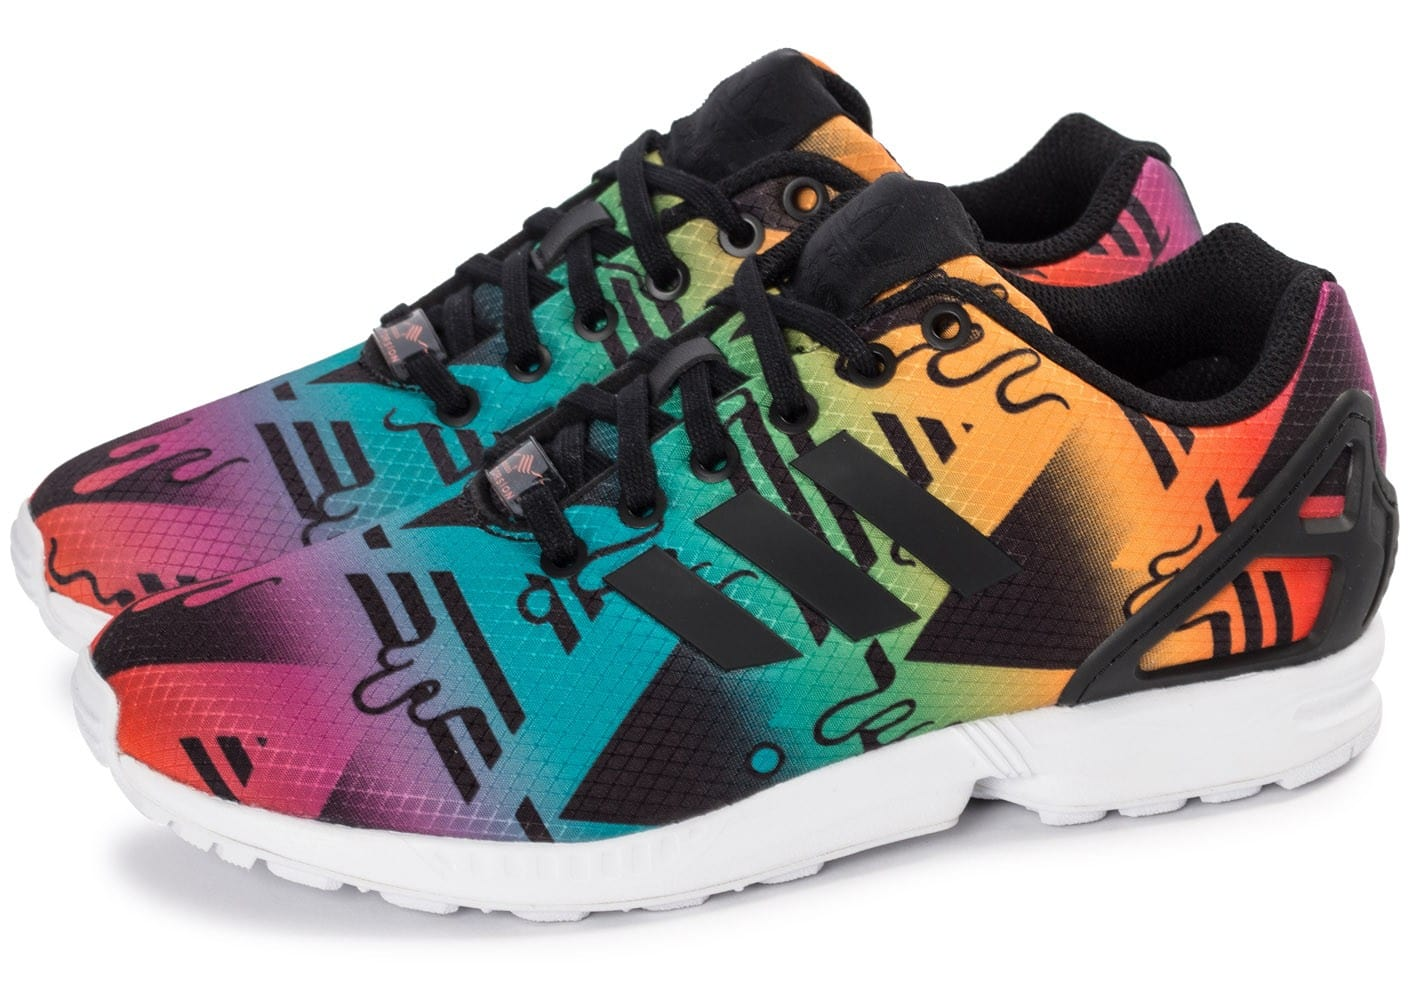 Chausport Zx Flux Homme Baskets Multicolor Adidas Chaussures Aq45j3RL